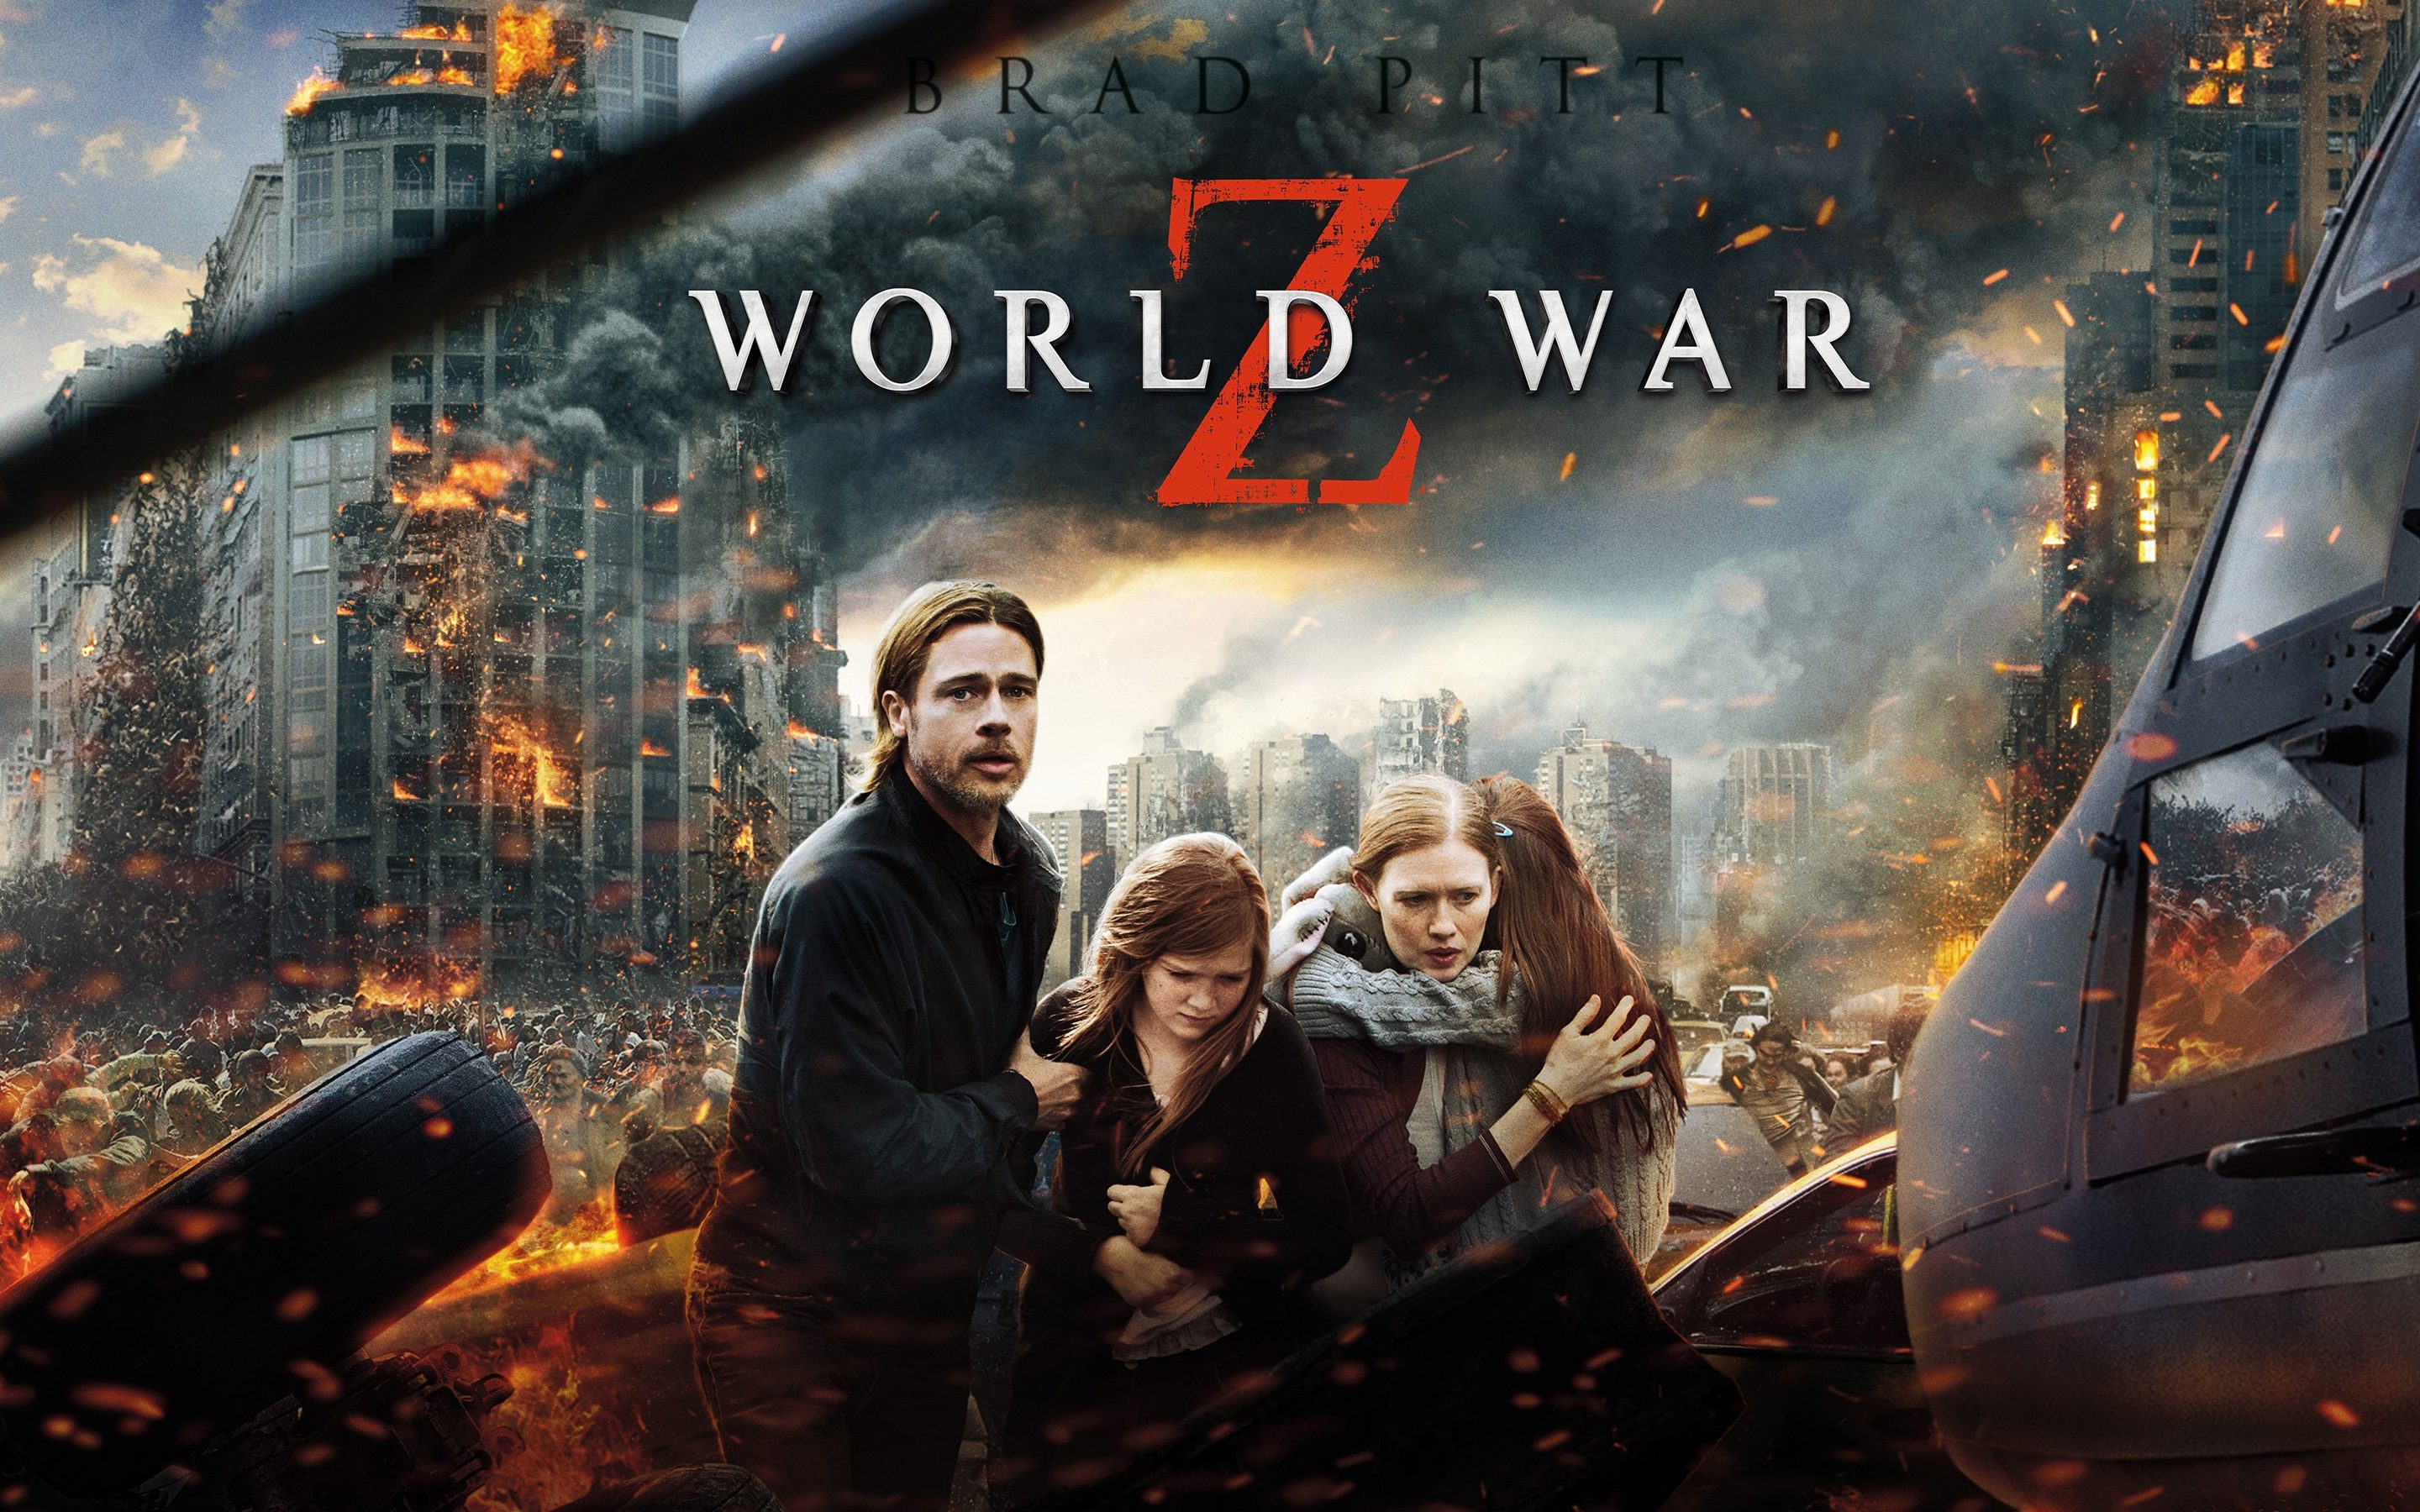 'World War Z' Sequel Loses Director